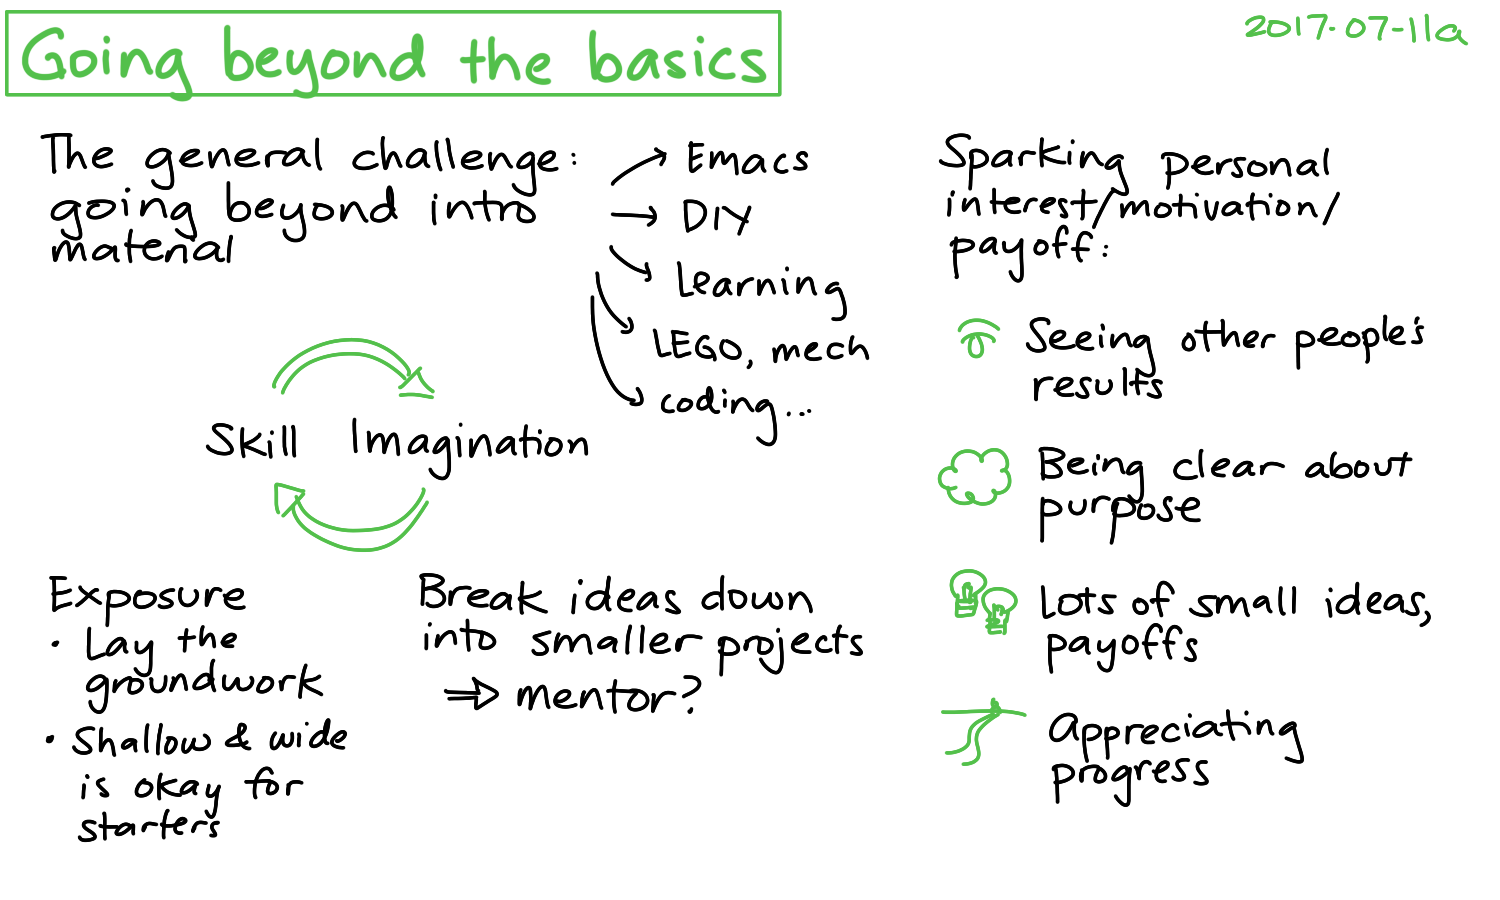 2017-07-11a Going beyond the basics #learning #teaching.png